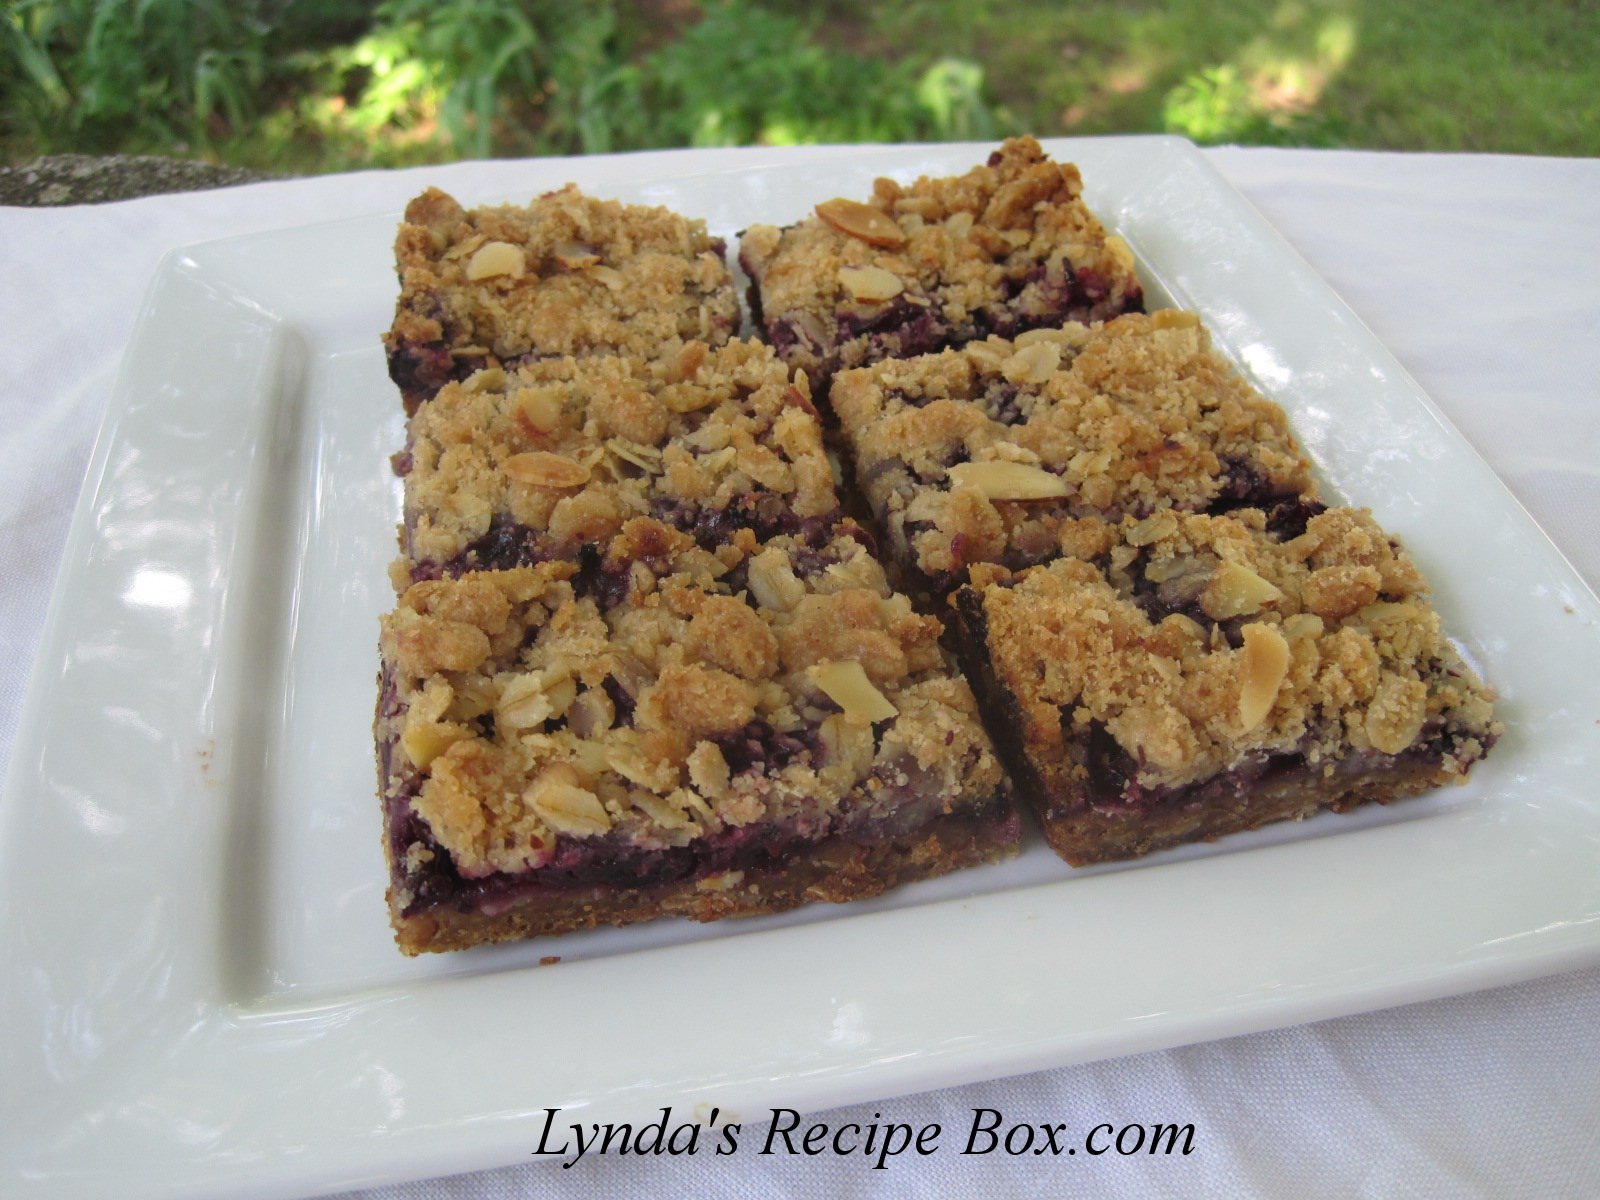 Blueberry Crisp Recipes With Cake Mix